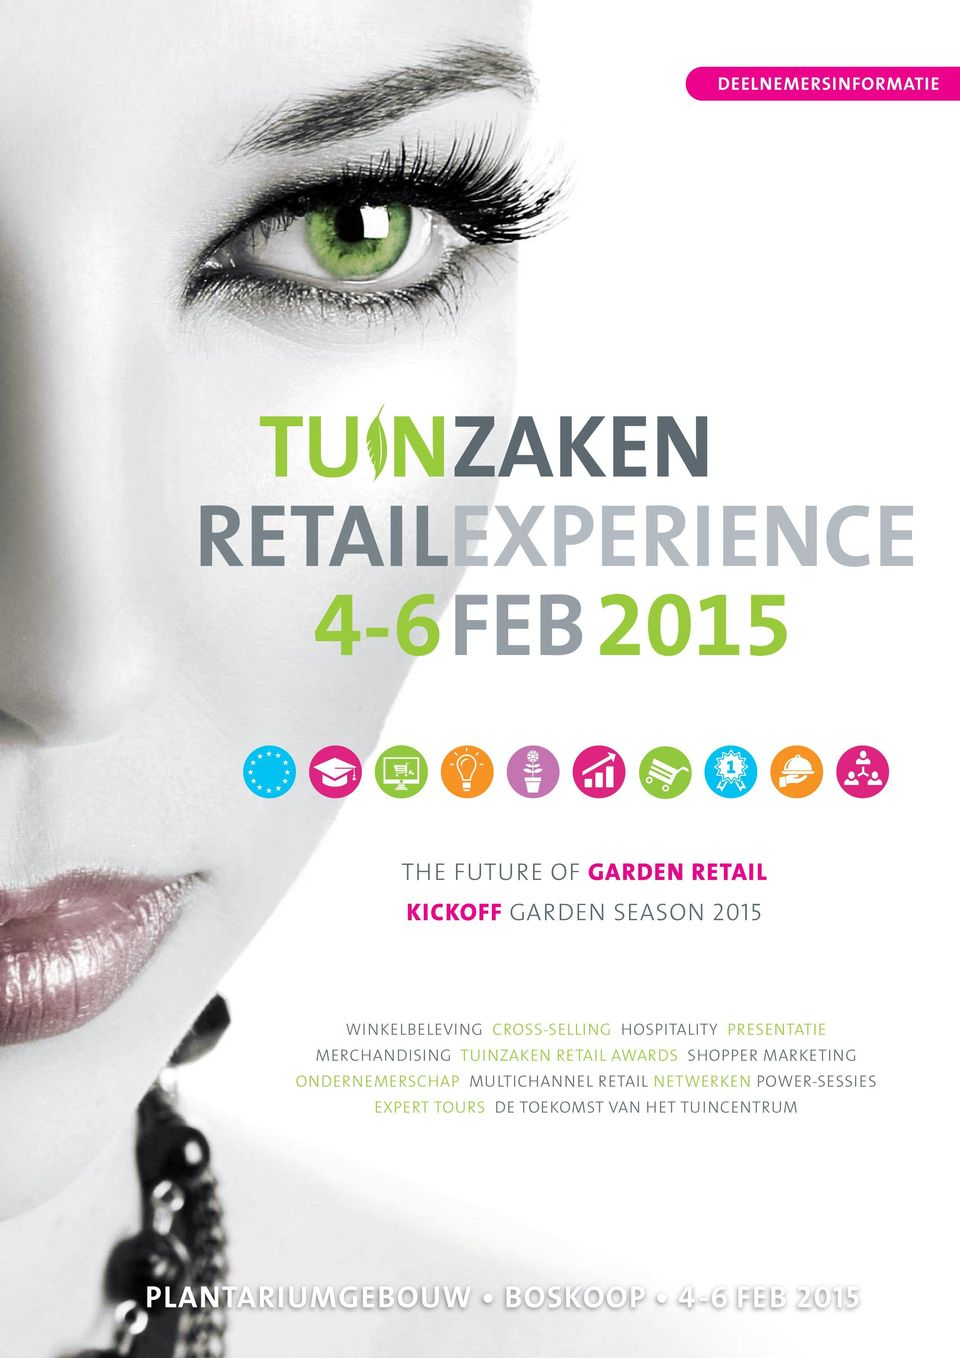 MERCHANDISING TUINZAKEN RETAIL AWARDS SHOPPER MARKETING ONDERNEMERSCHAP MULTICHANNEL RETAIL